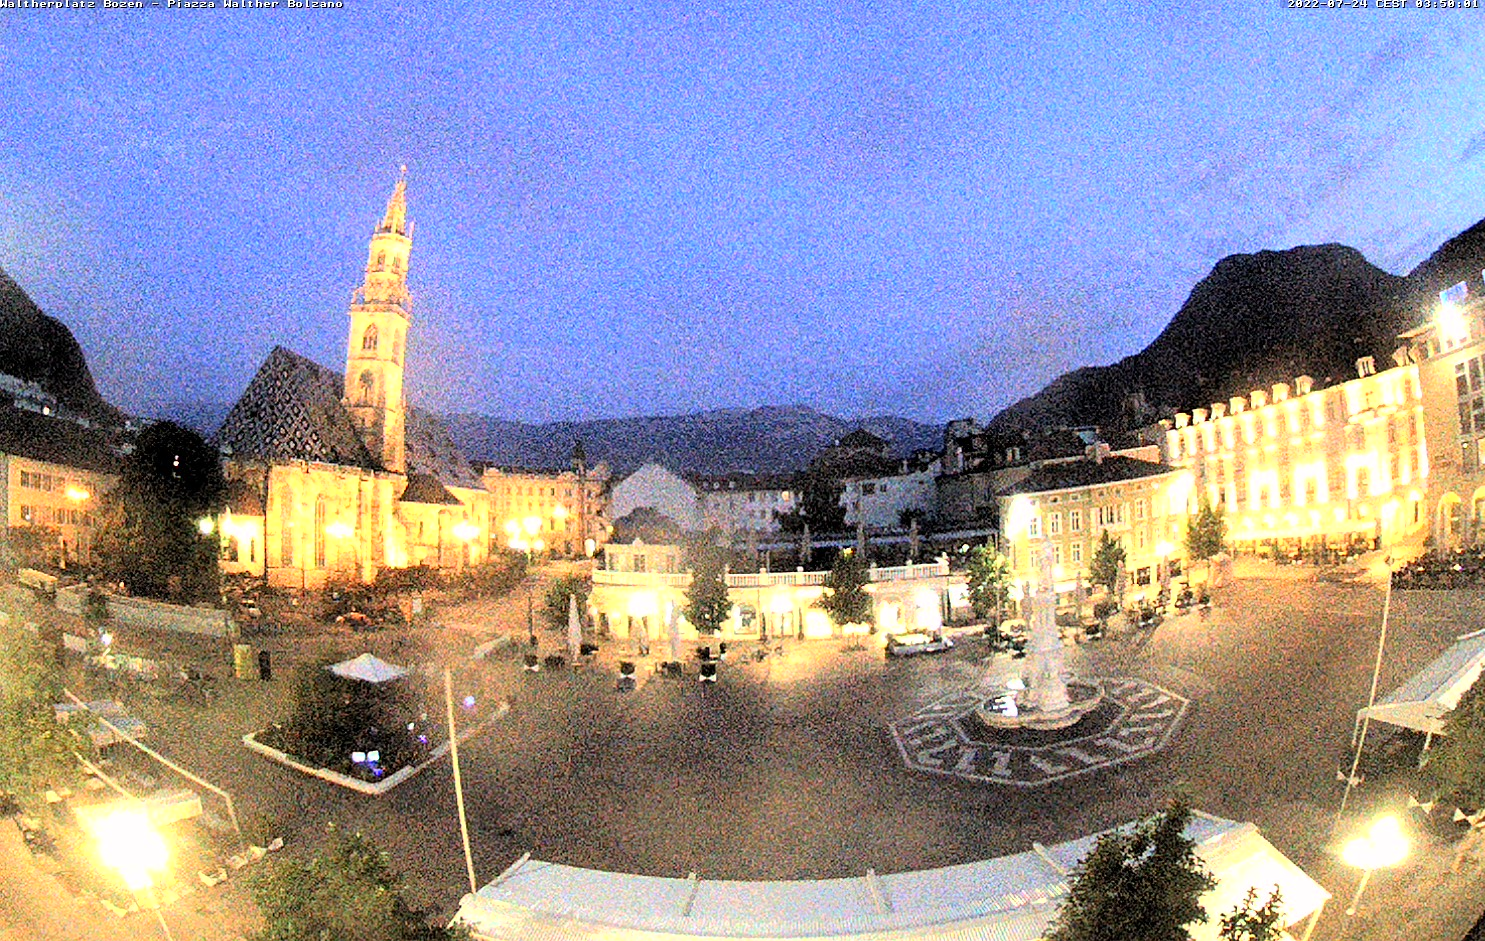 WEBCAM- Piazza Walther